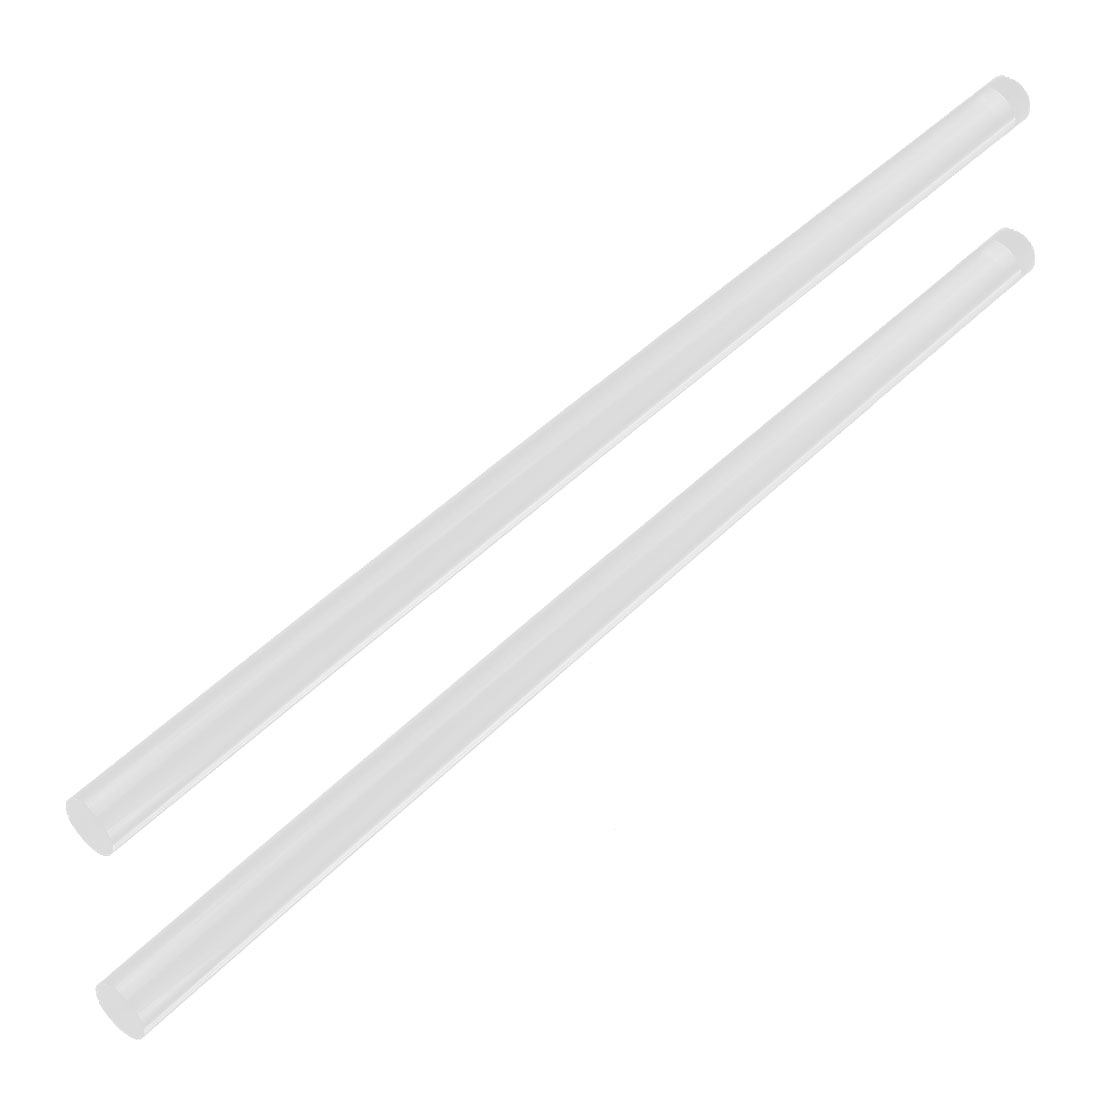 "2Pcs 13mm Clear Round Acrylic Rod PMMA Circular Bar 12"" Length"